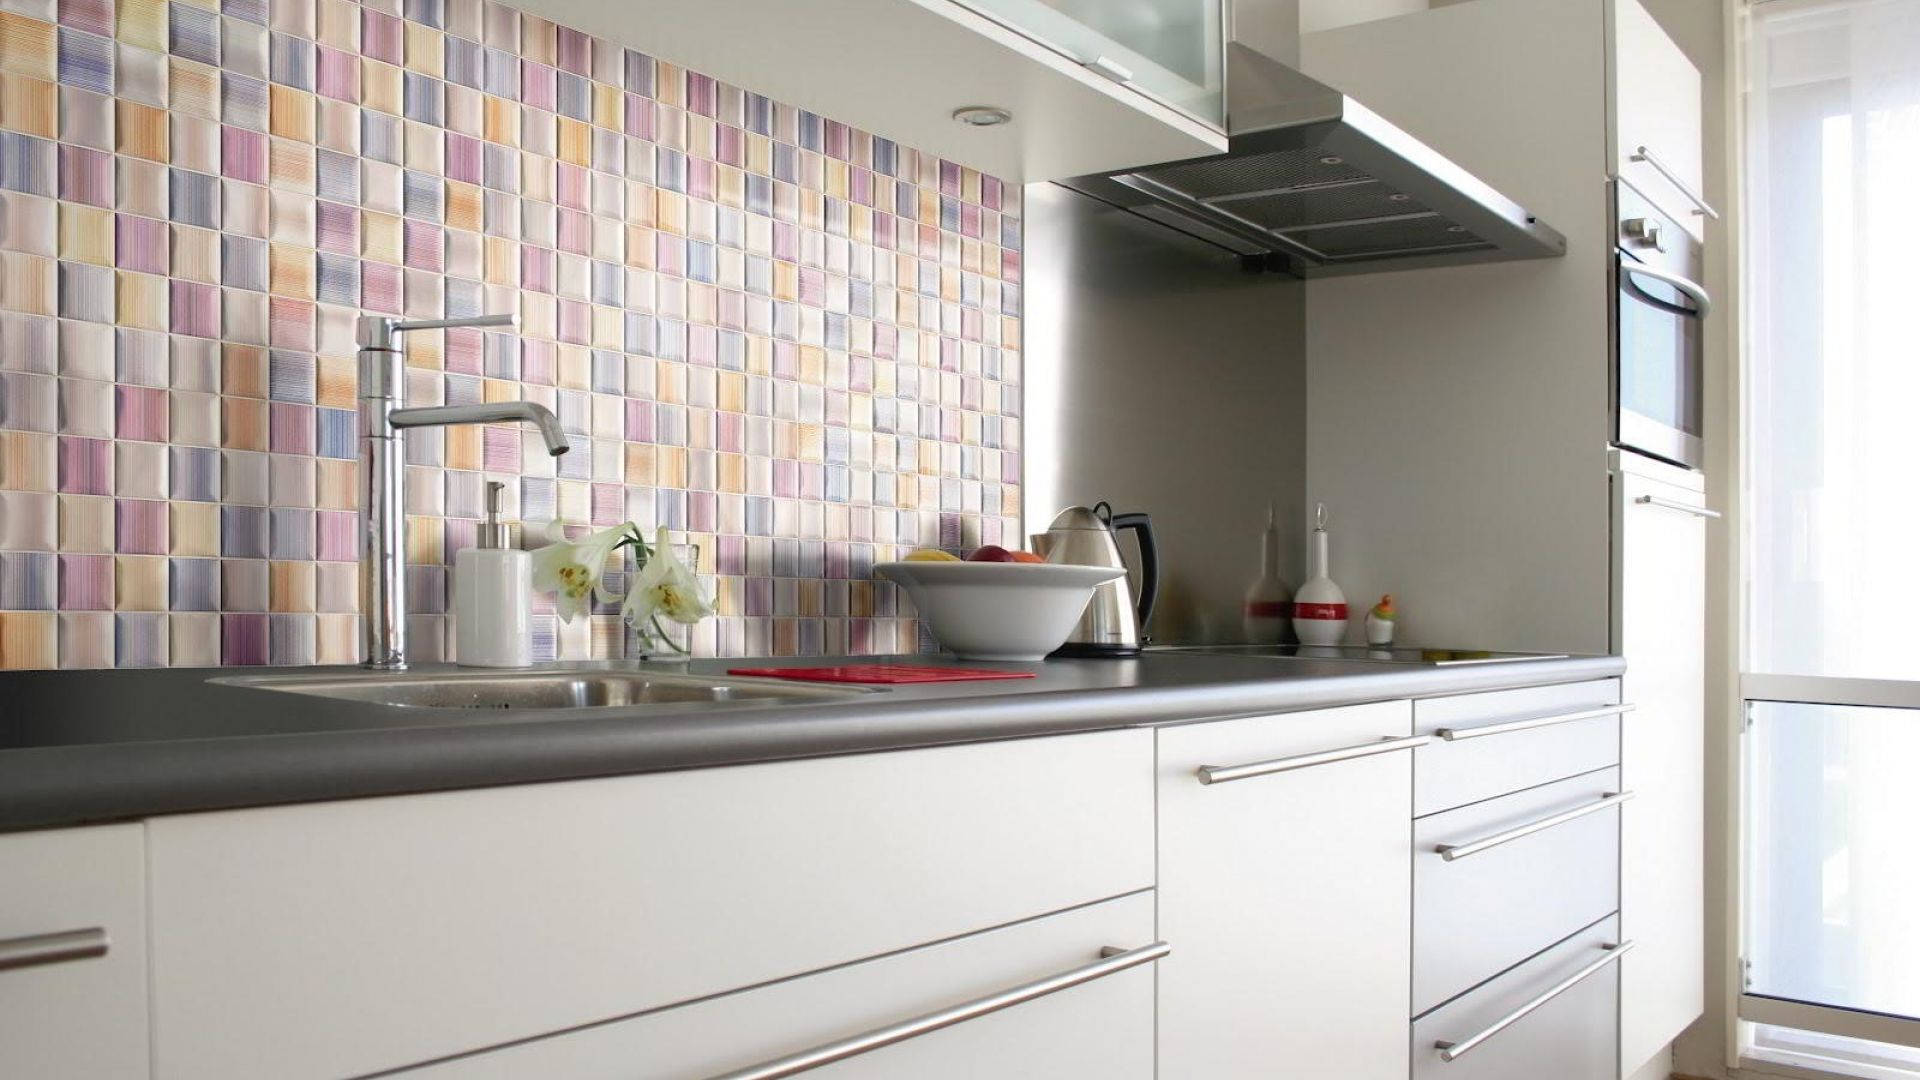 Mozaik Keramik Improve The Aesthetic Of Your House With Mosaic Tiles Weber